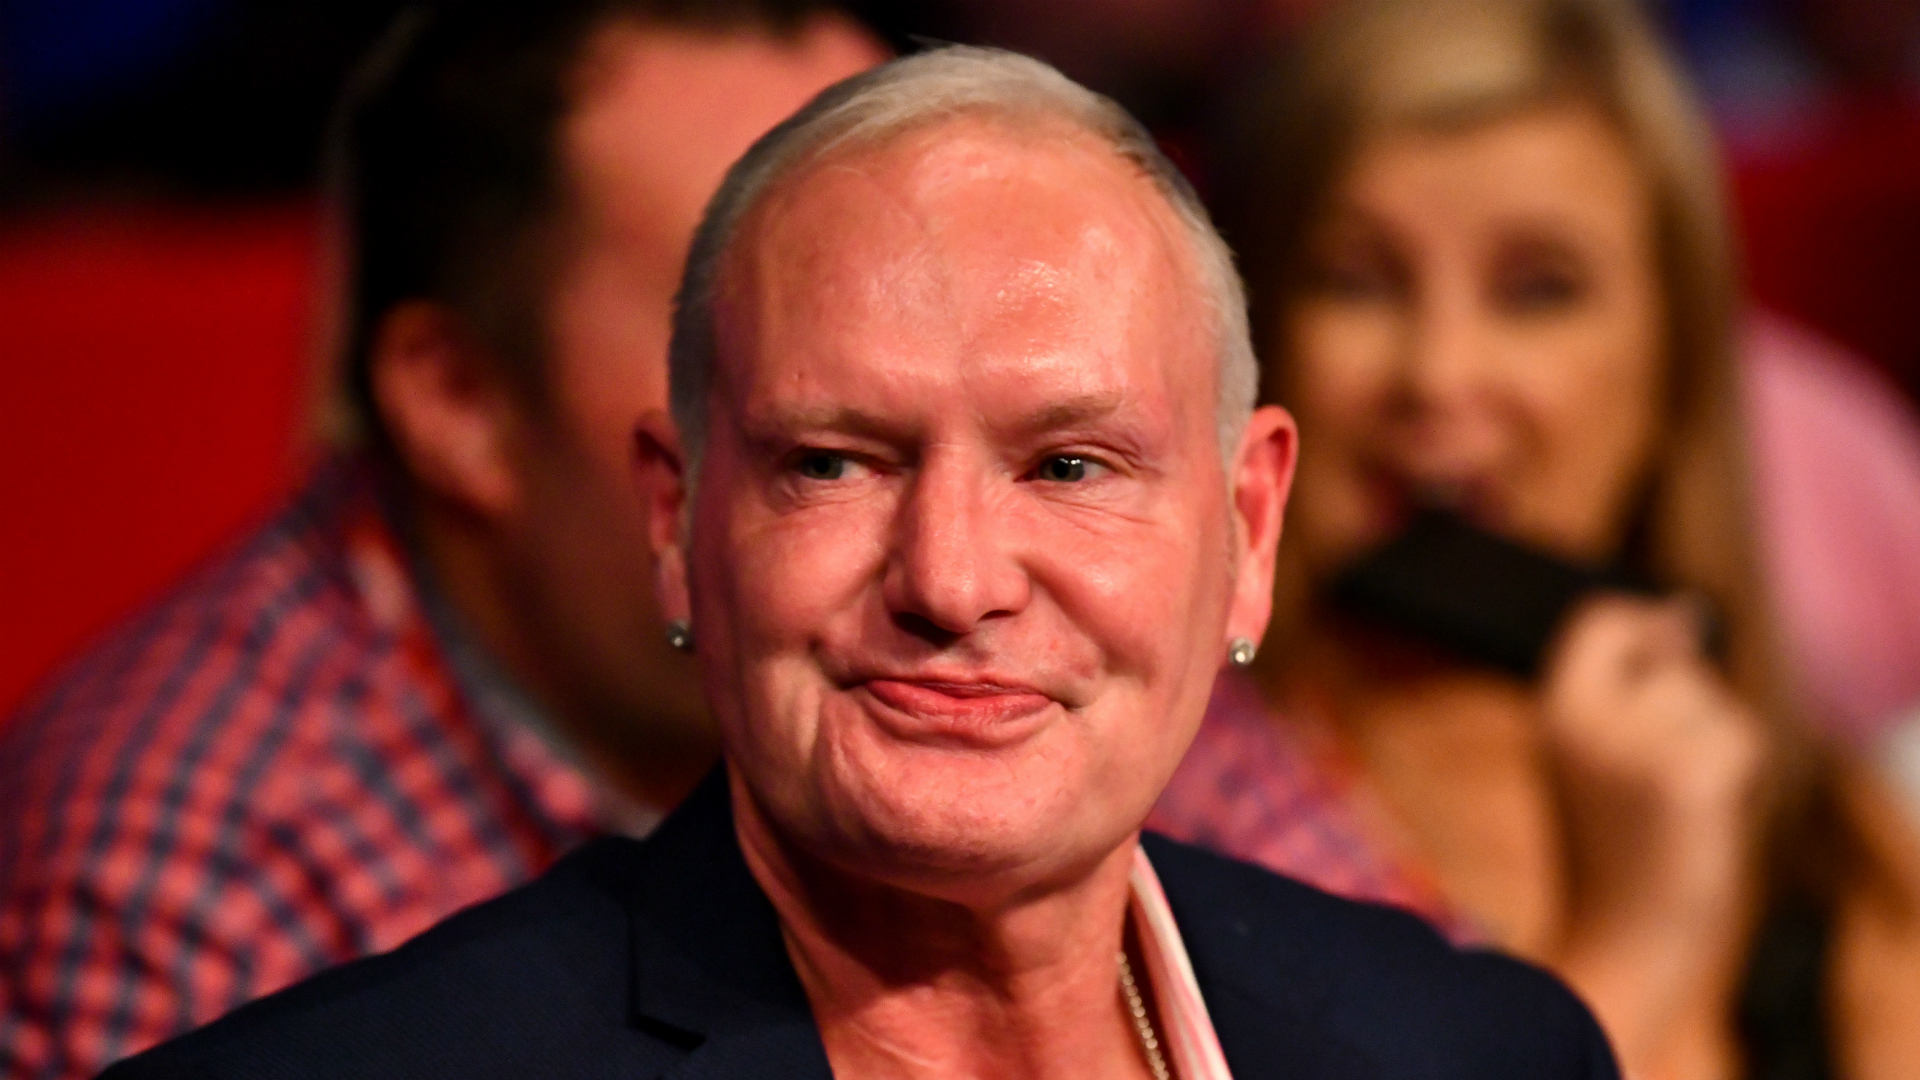 Former football star Paul 'Gazza' Gascoigne charged with sexual assault